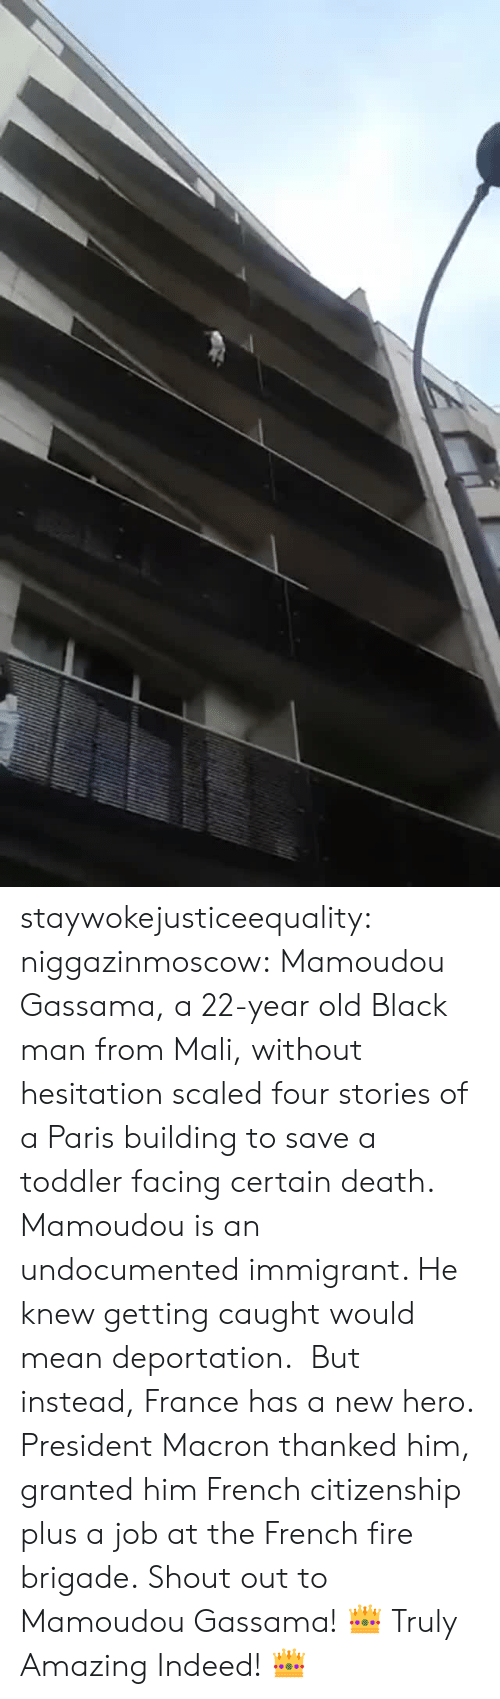 Fire, Target, and Tumblr: staywokejusticeequality:  niggazinmoscow:  Mamoudou Gassama, a 22-year old Black man from Mali, without hesitation   scaled four stories of a Paris building to save a toddler facing certain death. Mamoudou is an undocumented immigrant. He knew getting caught would mean deportation. But instead, France has a new hero. President Macron thanked him, granted him French citizenship plus a job at the French fire brigade. Shout out to Mamoudou Gassama!    👑 Truly Amazing Indeed! 👑